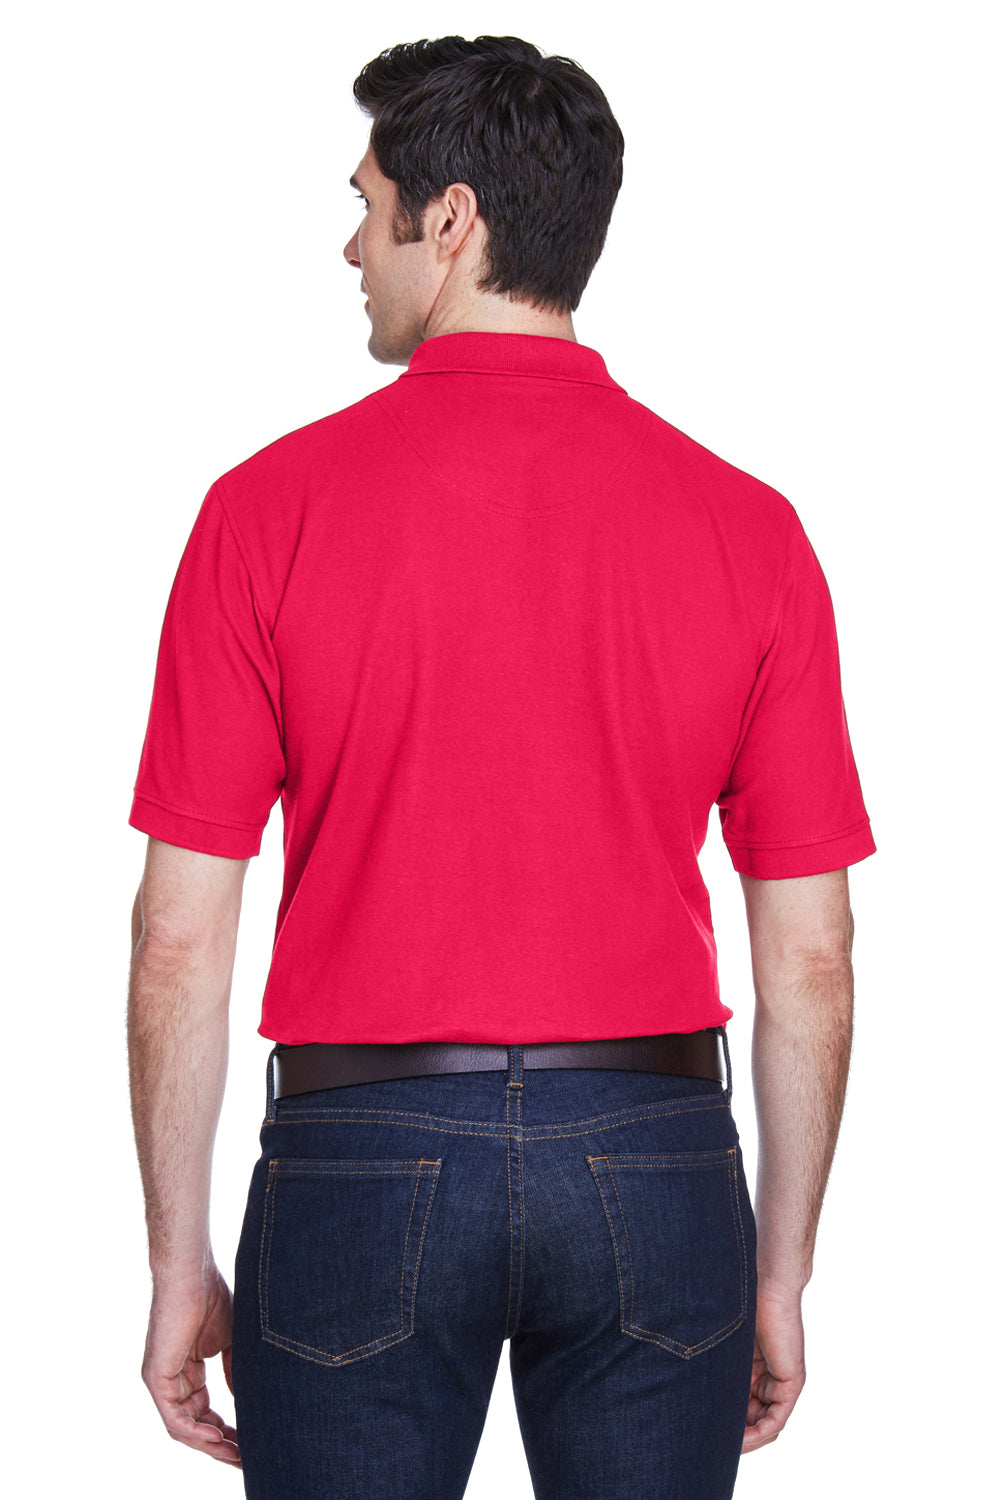 UltraClub 8540 Mens Whisper Short Sleeve Polo Shirt Red Back